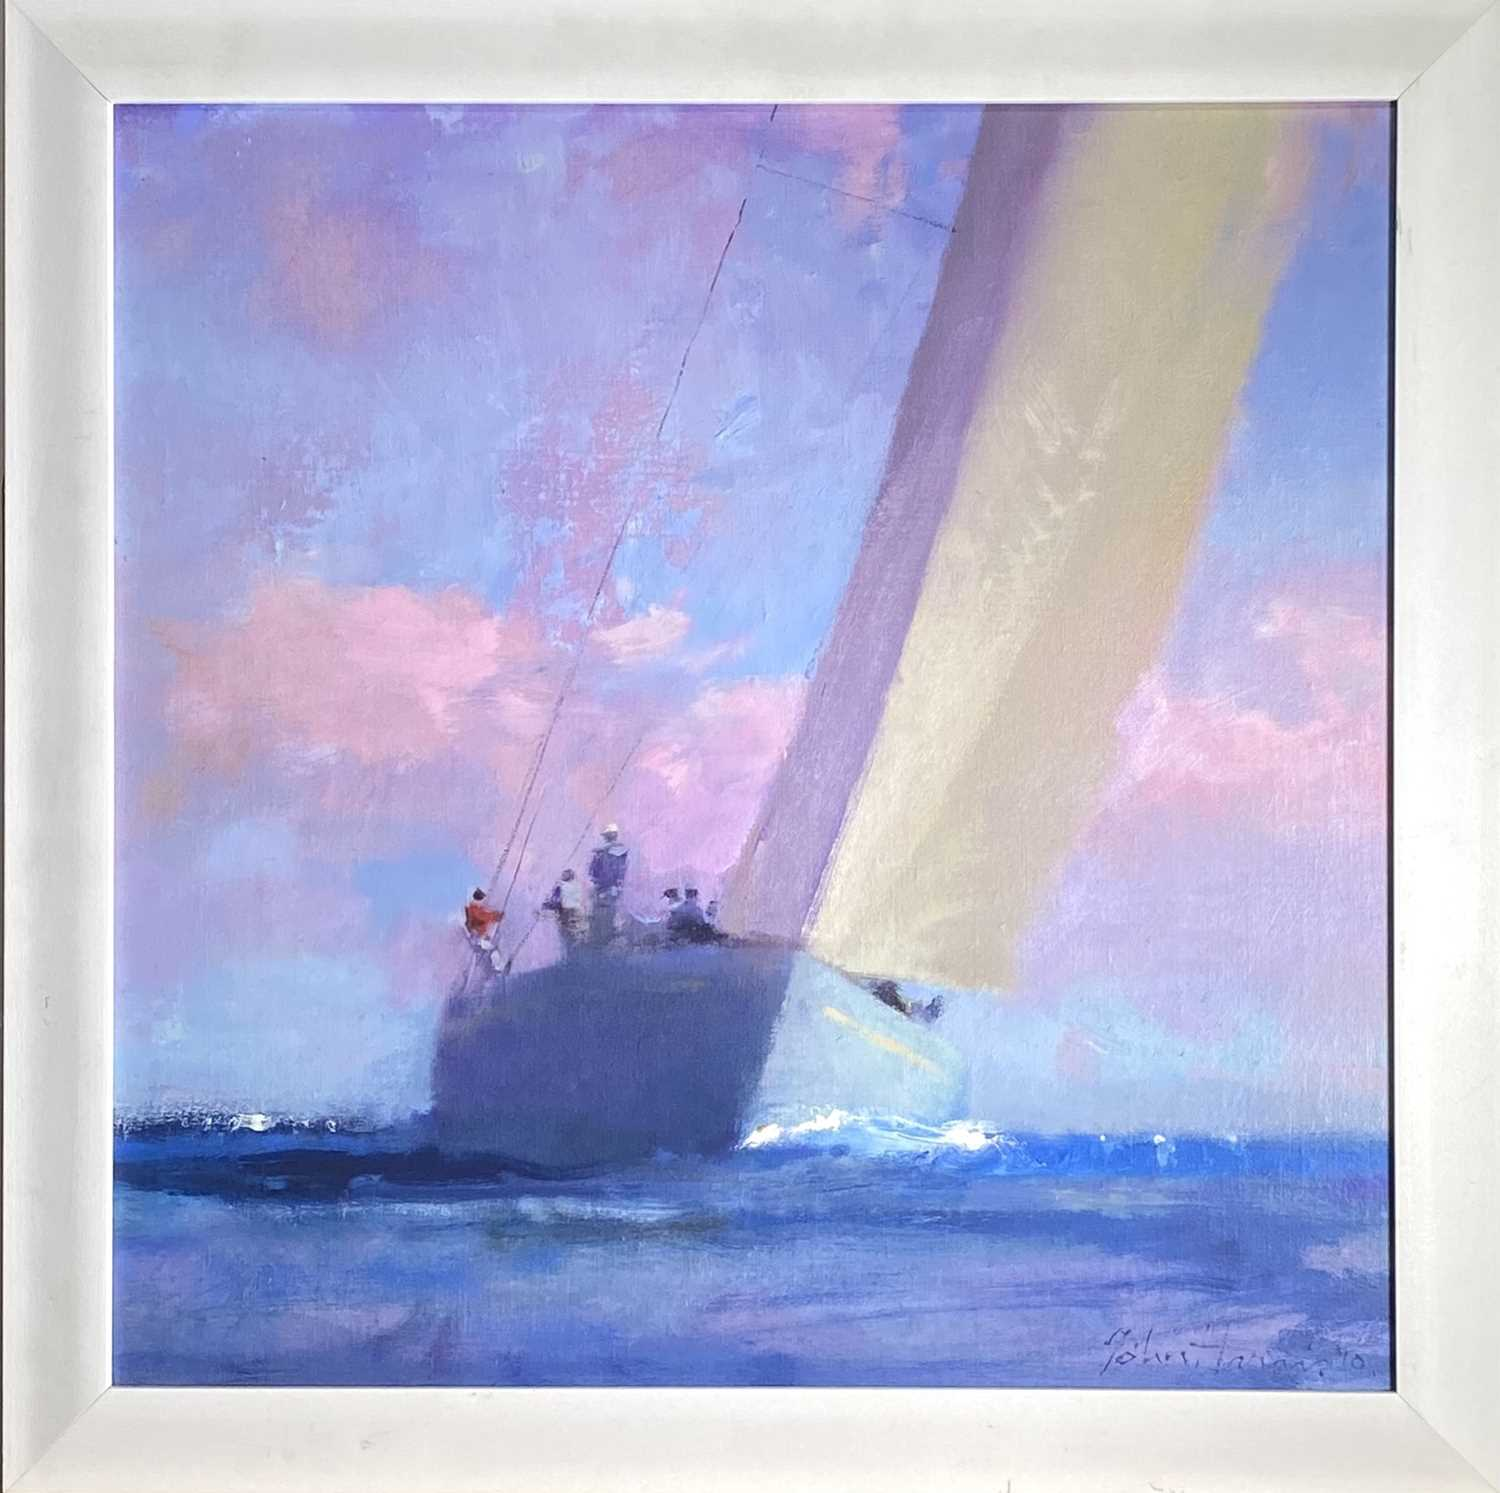 John HARRIS (1948)SailingOil on board Signed and dated '1044.5 x 44.5cmJohn Harris is the only - Image 2 of 3